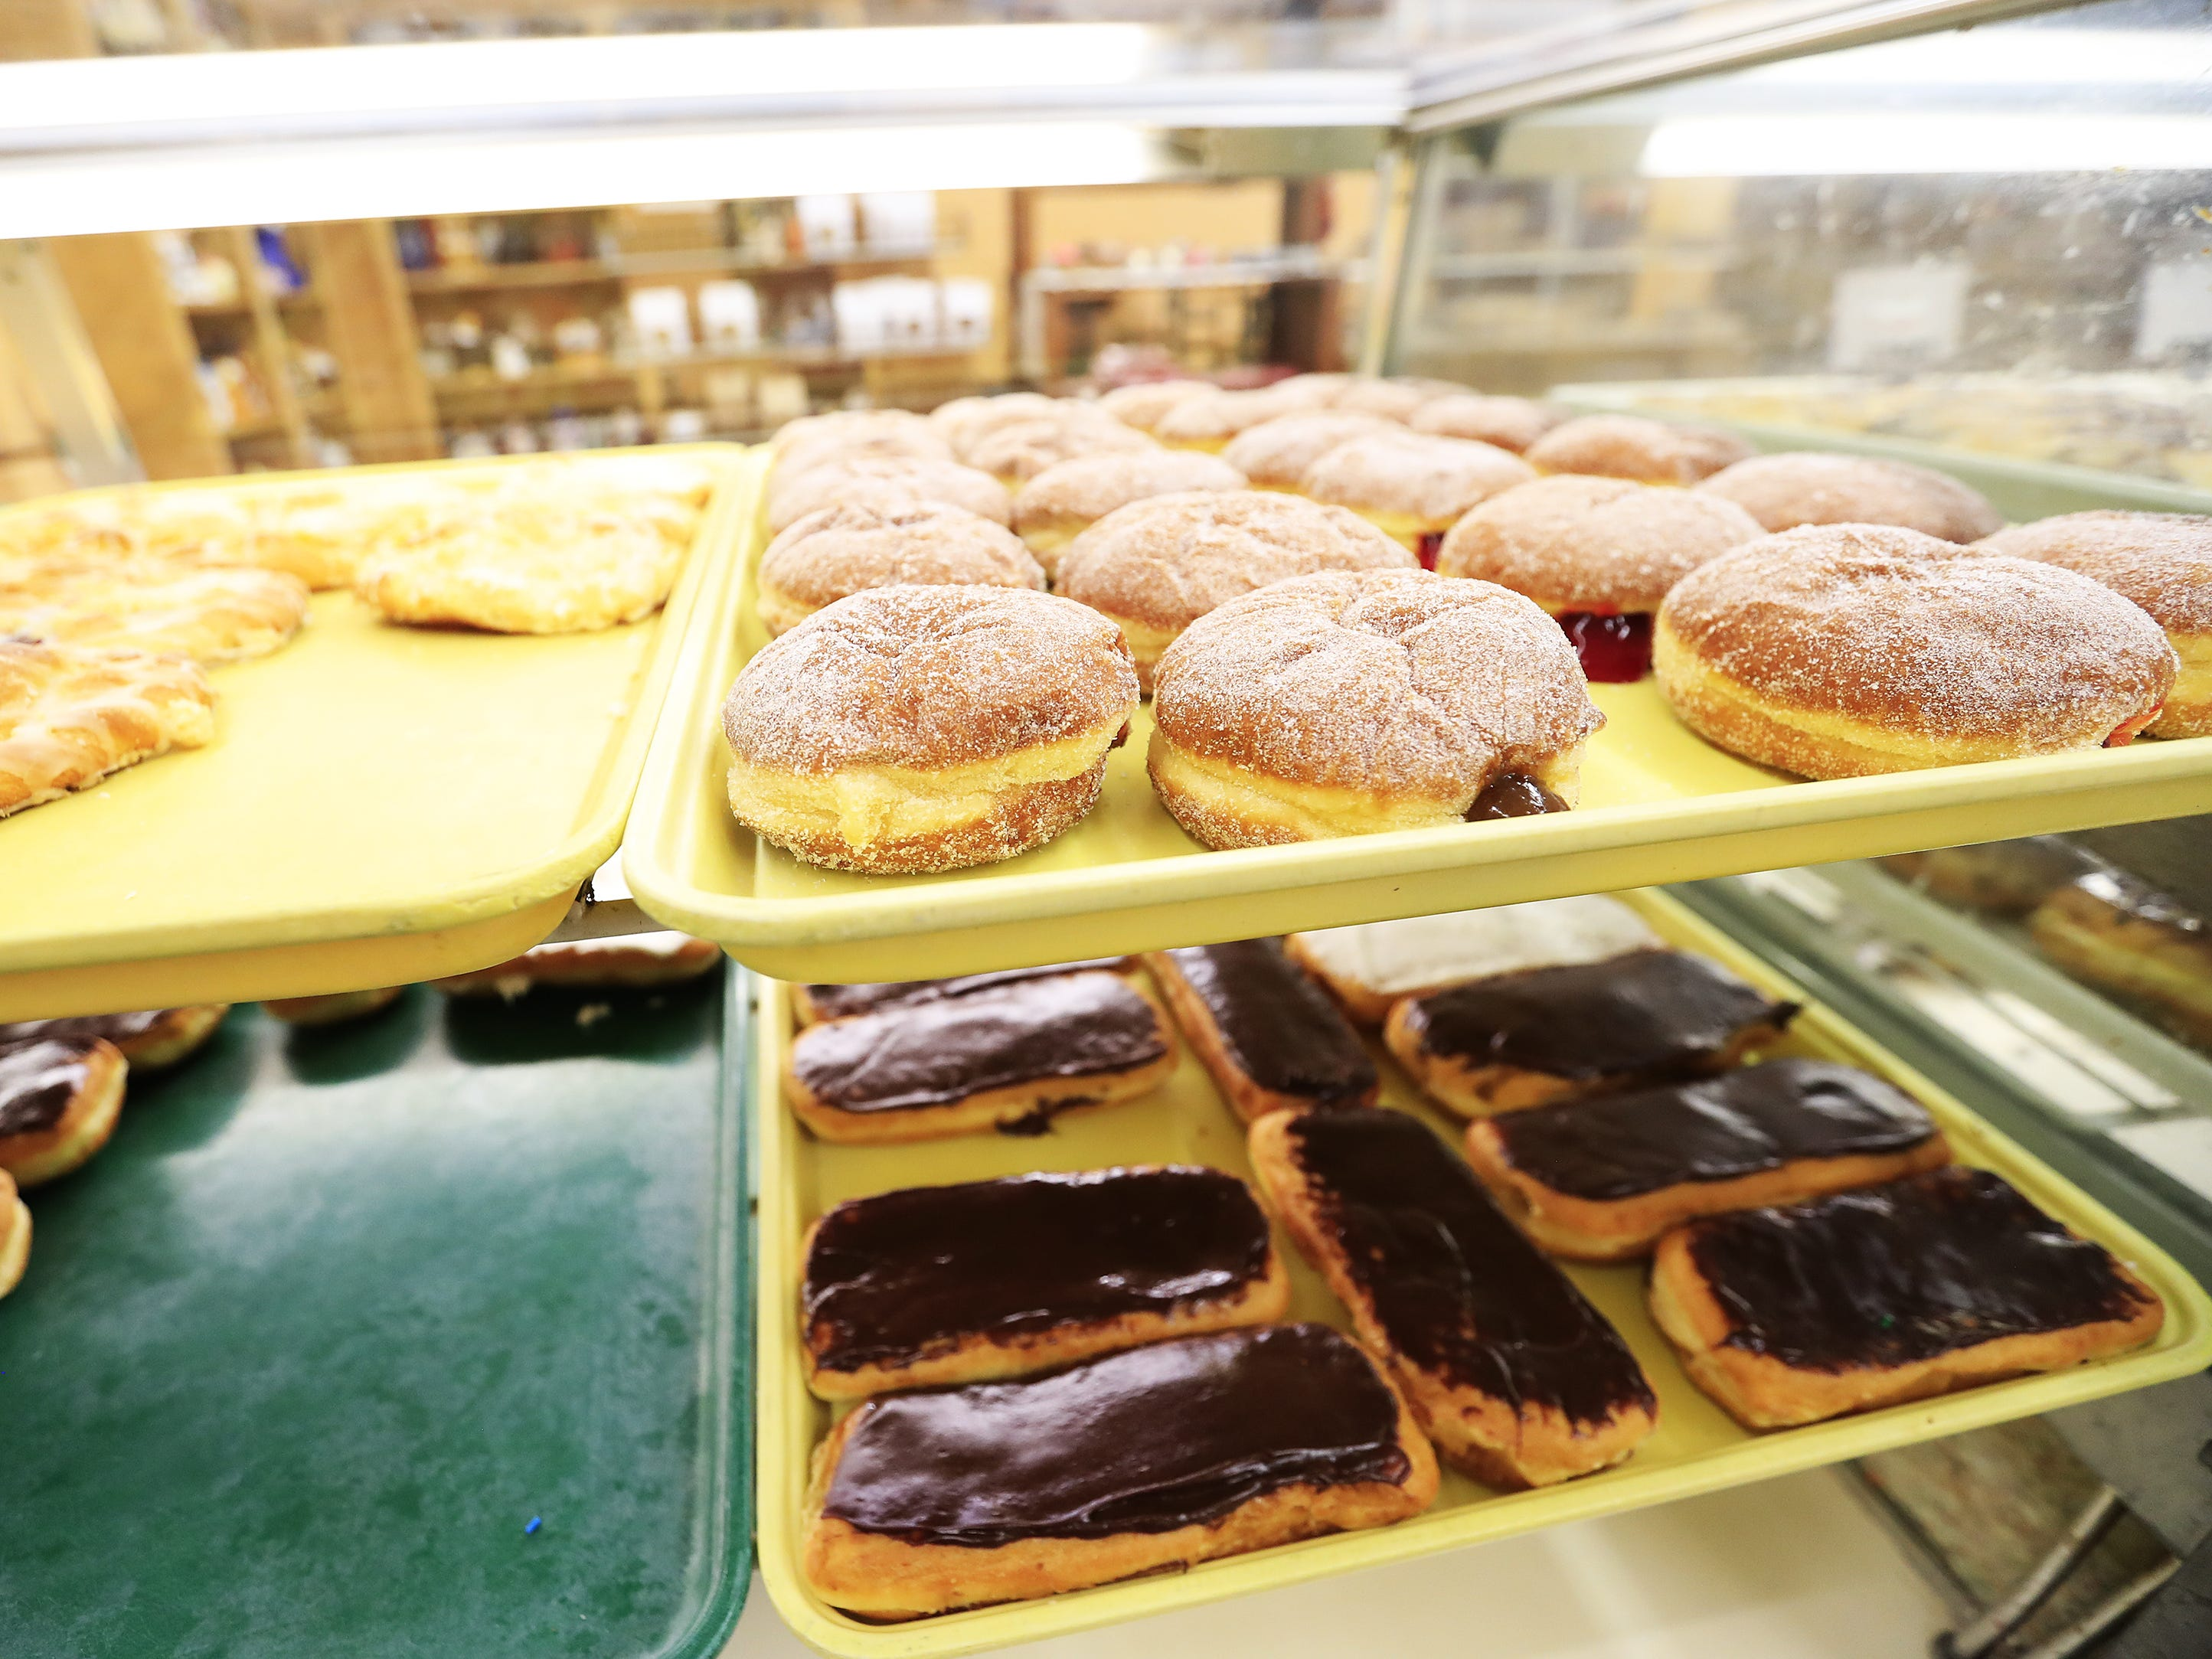 Paczki in the display case at Smurawa's Country Bakery are shown on Tuesday, Feb. 26, 2019, in Pulaski.